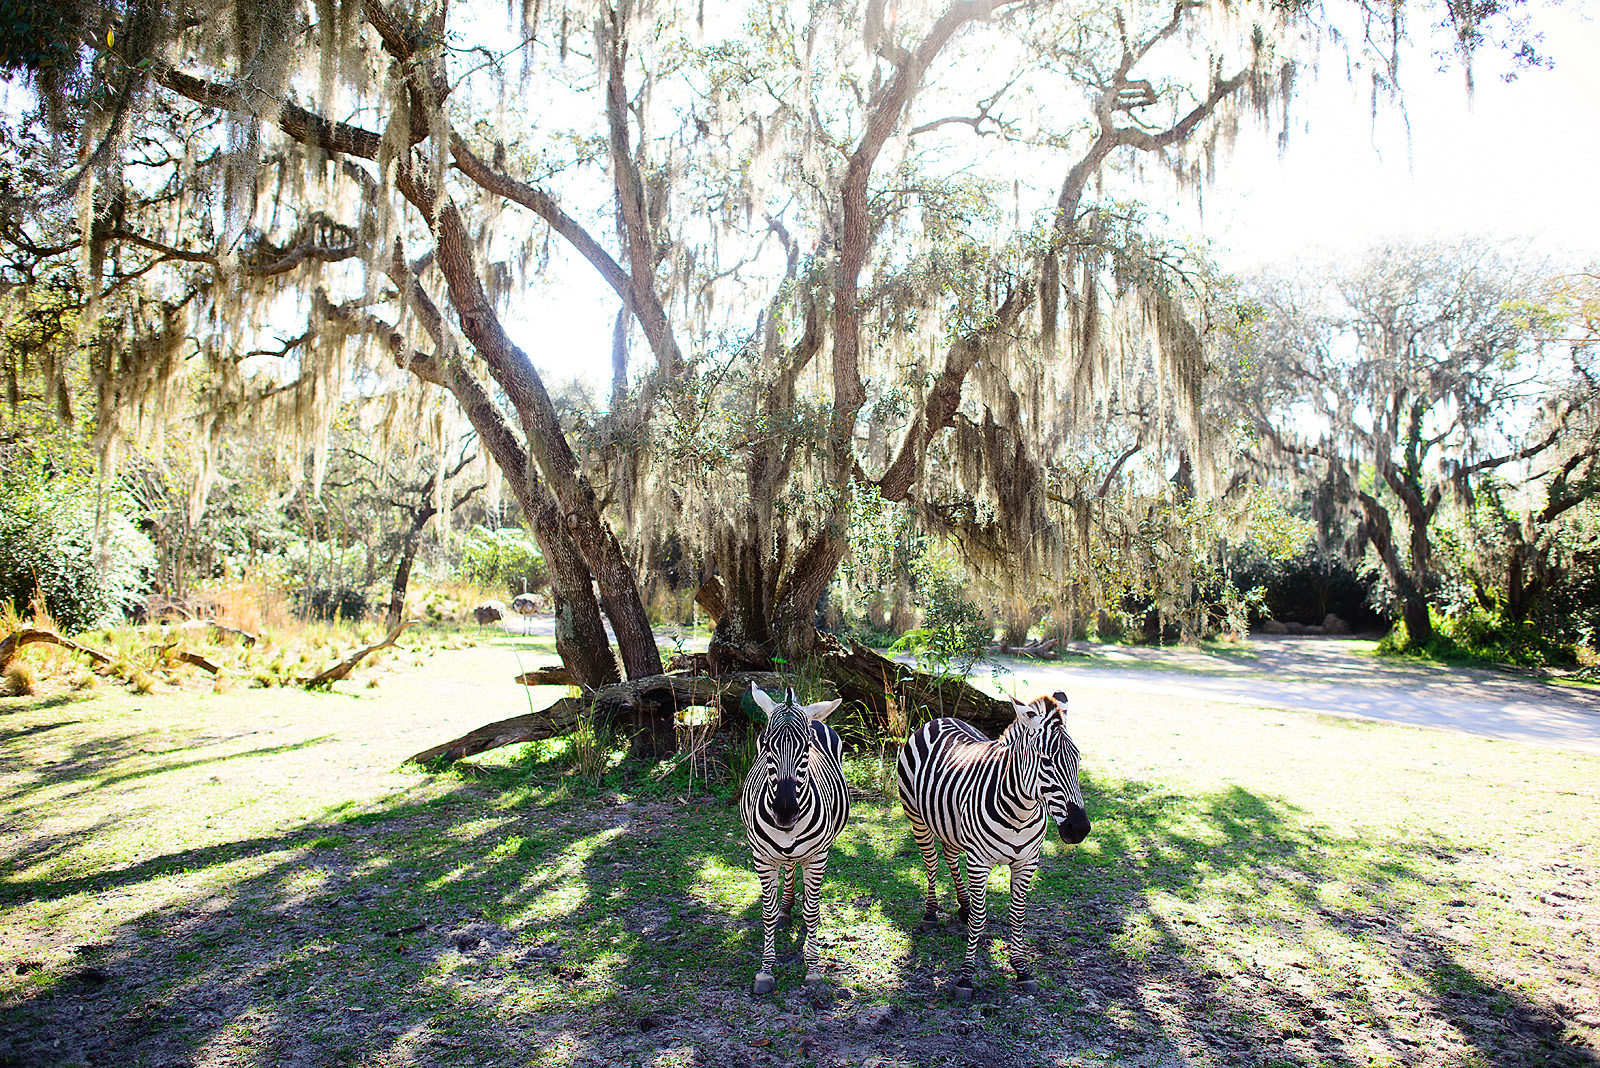 zebras hanging out at Animal Kingdom Kilimanjaro Safari